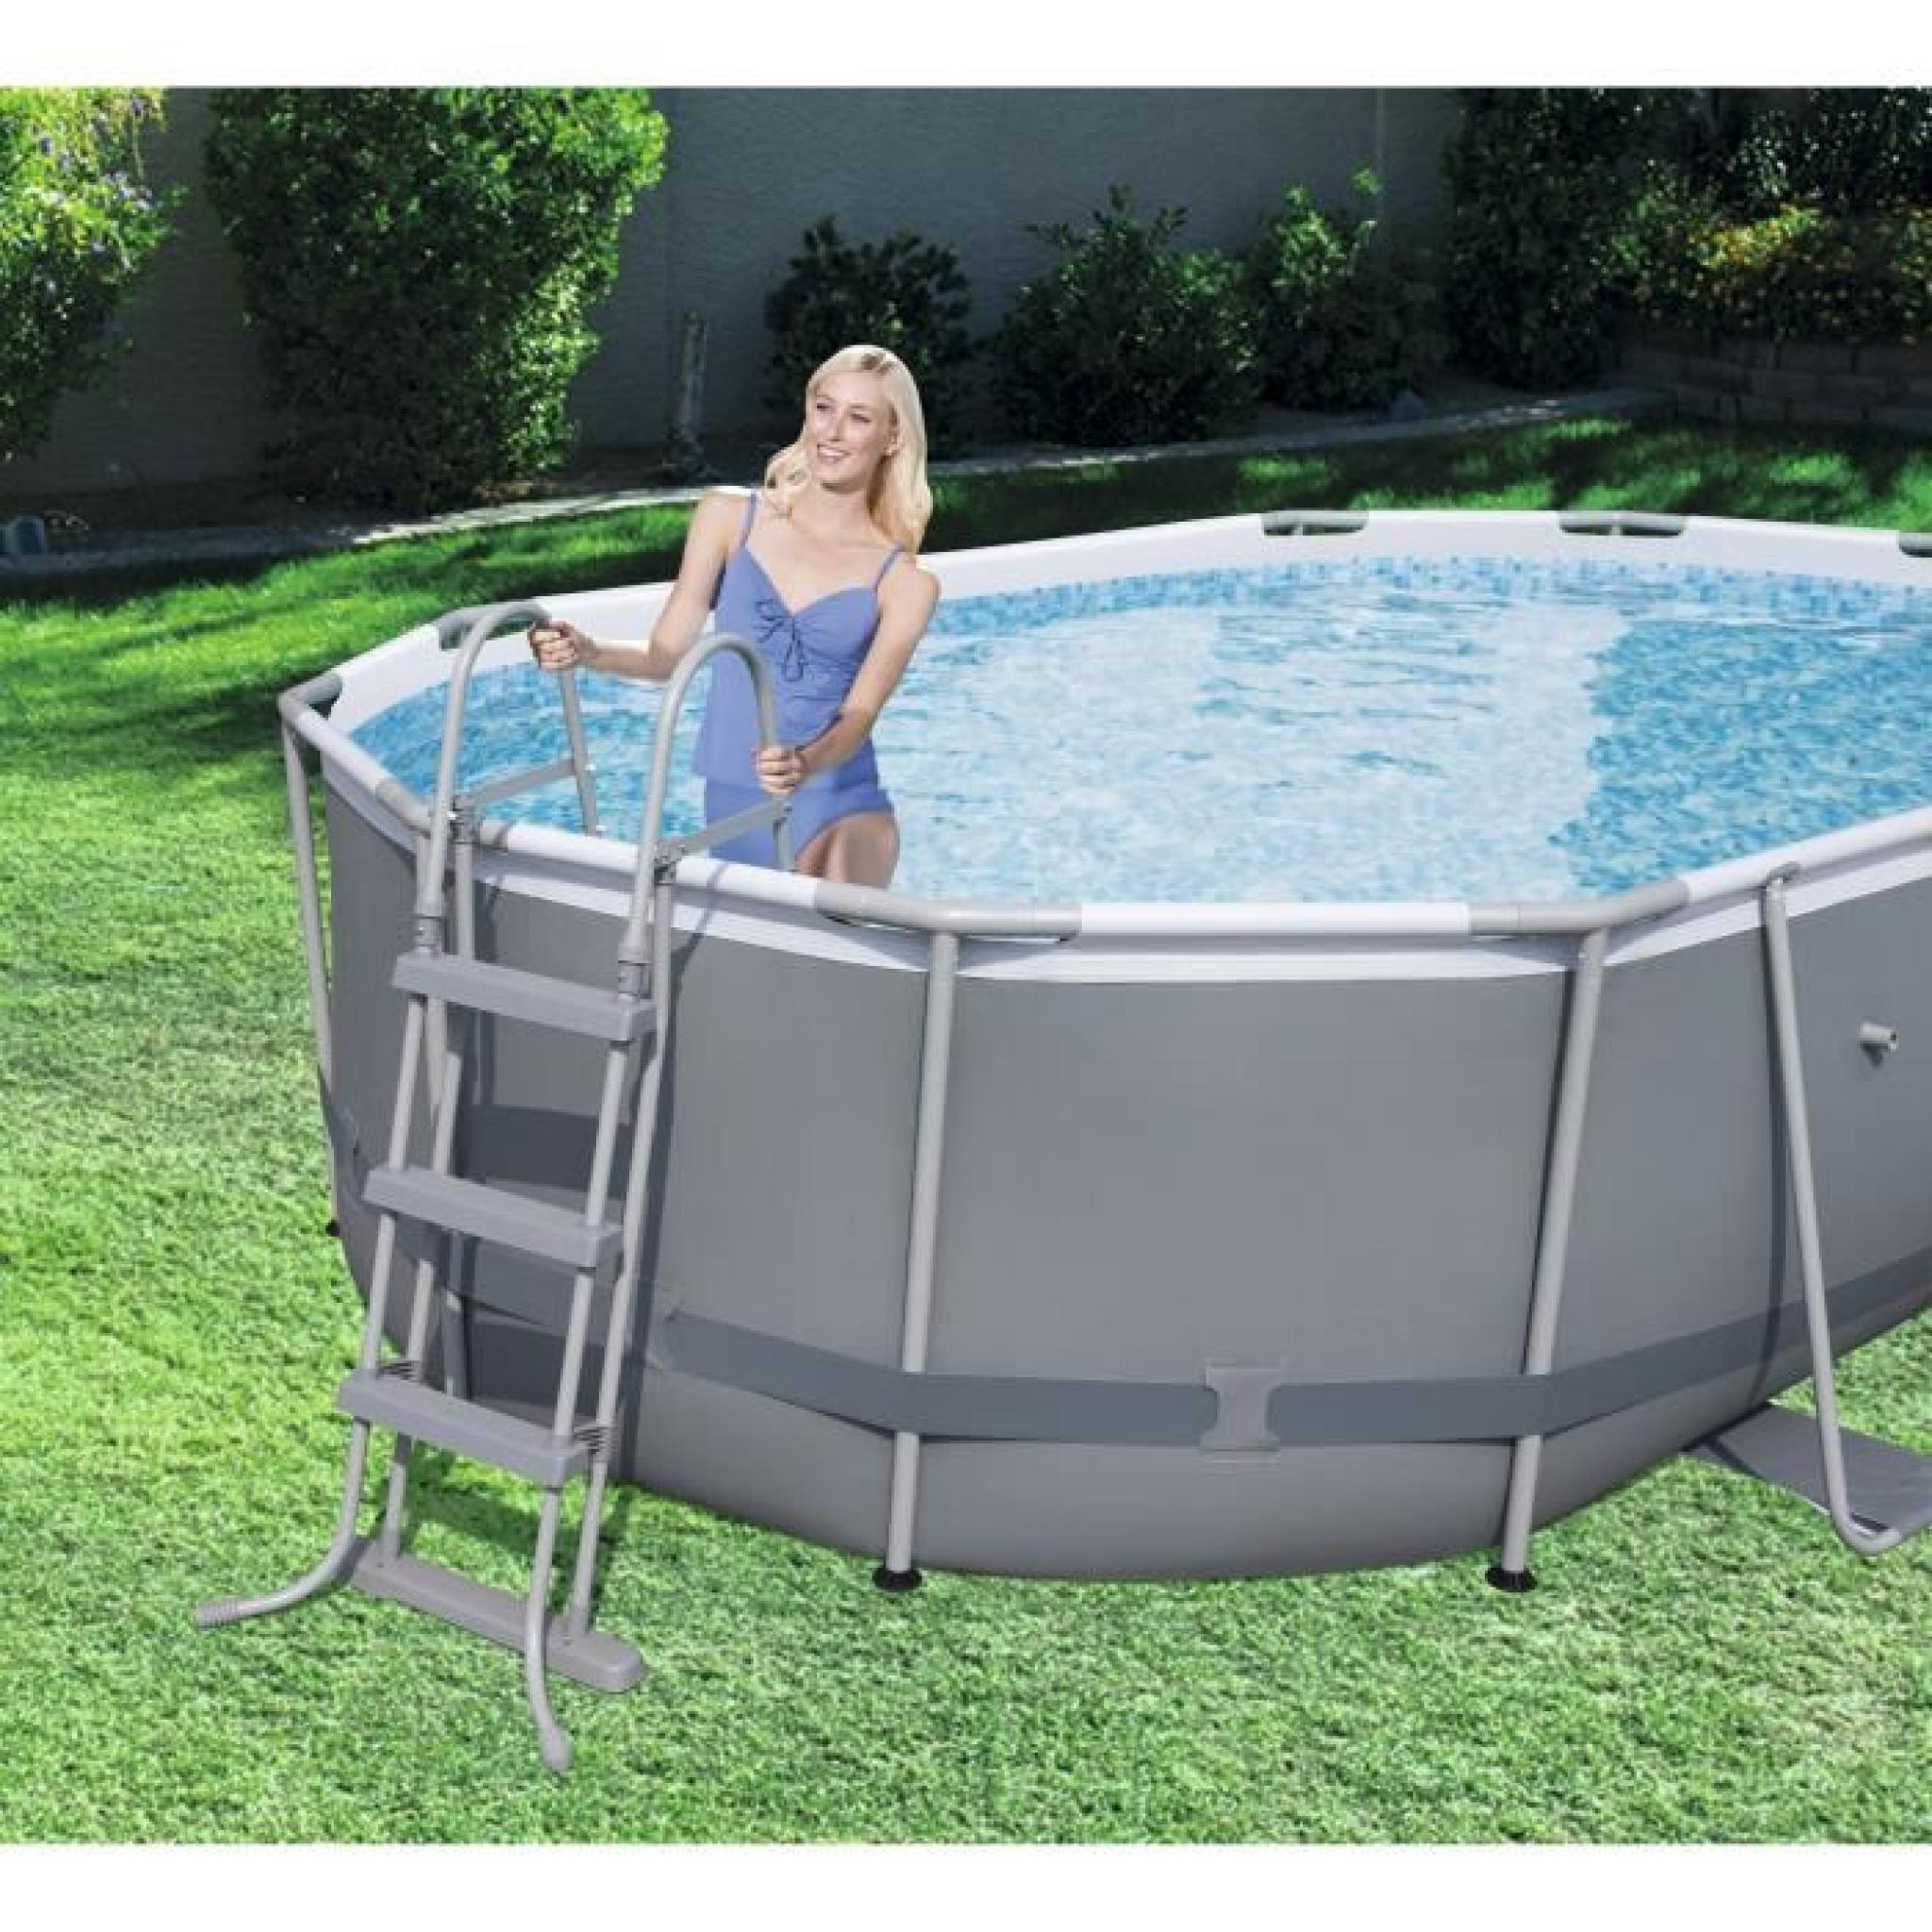 Bestway kit piscine power steel frame pools ovale for Bestway piscine